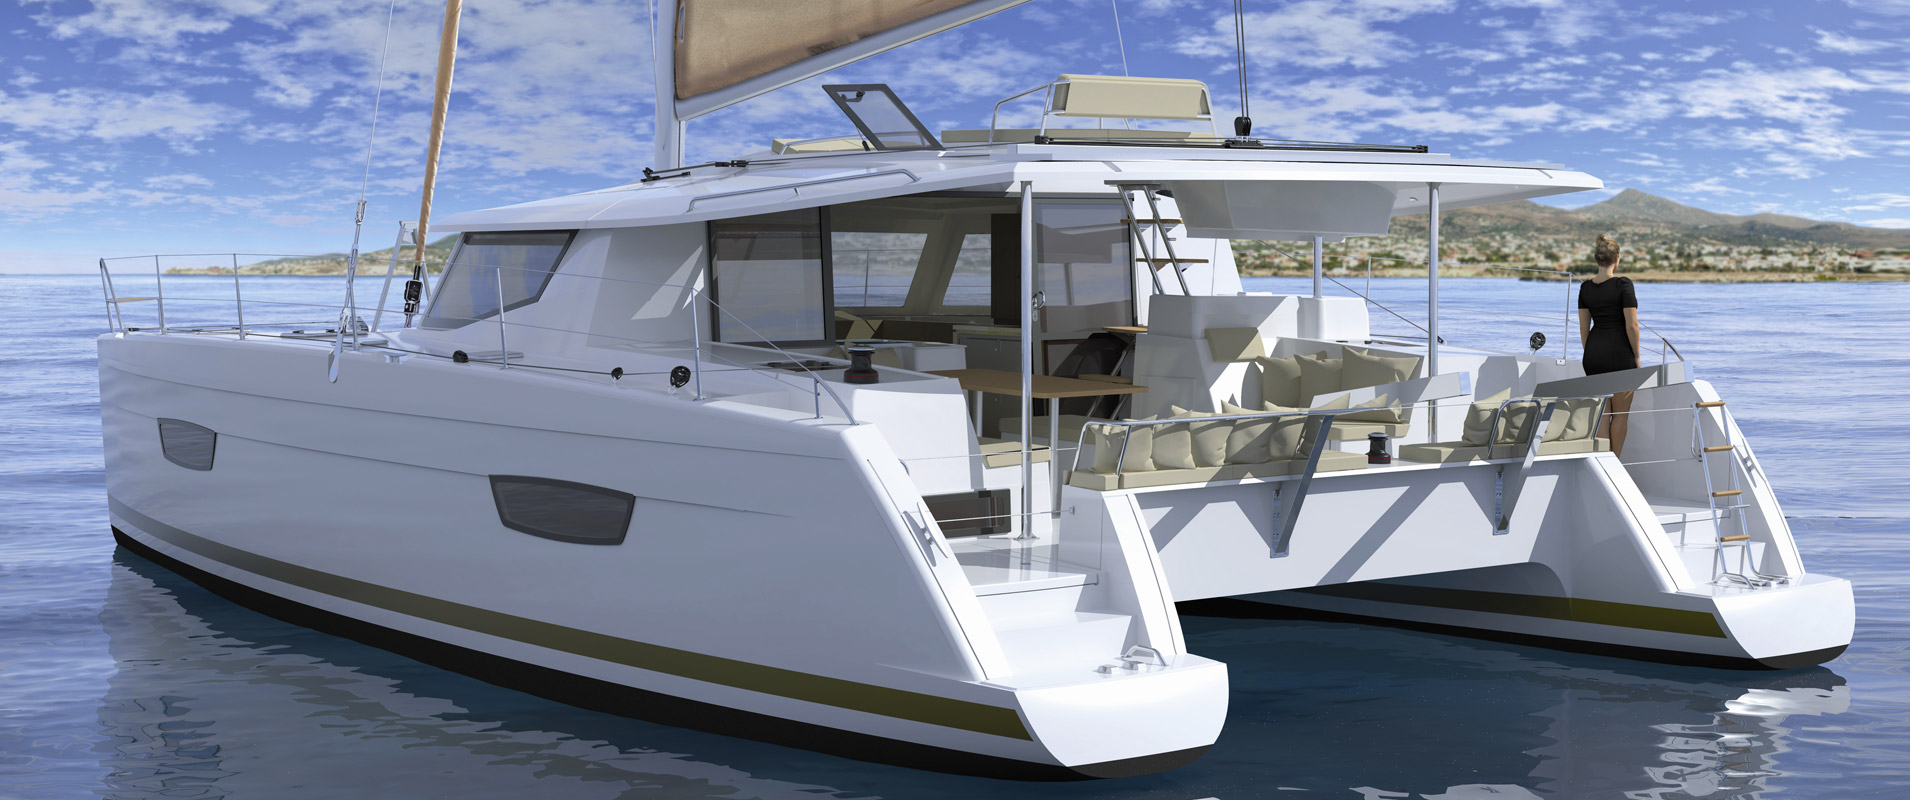 fountaine-pajot-catamaran-helia-44-evolution-photos-1